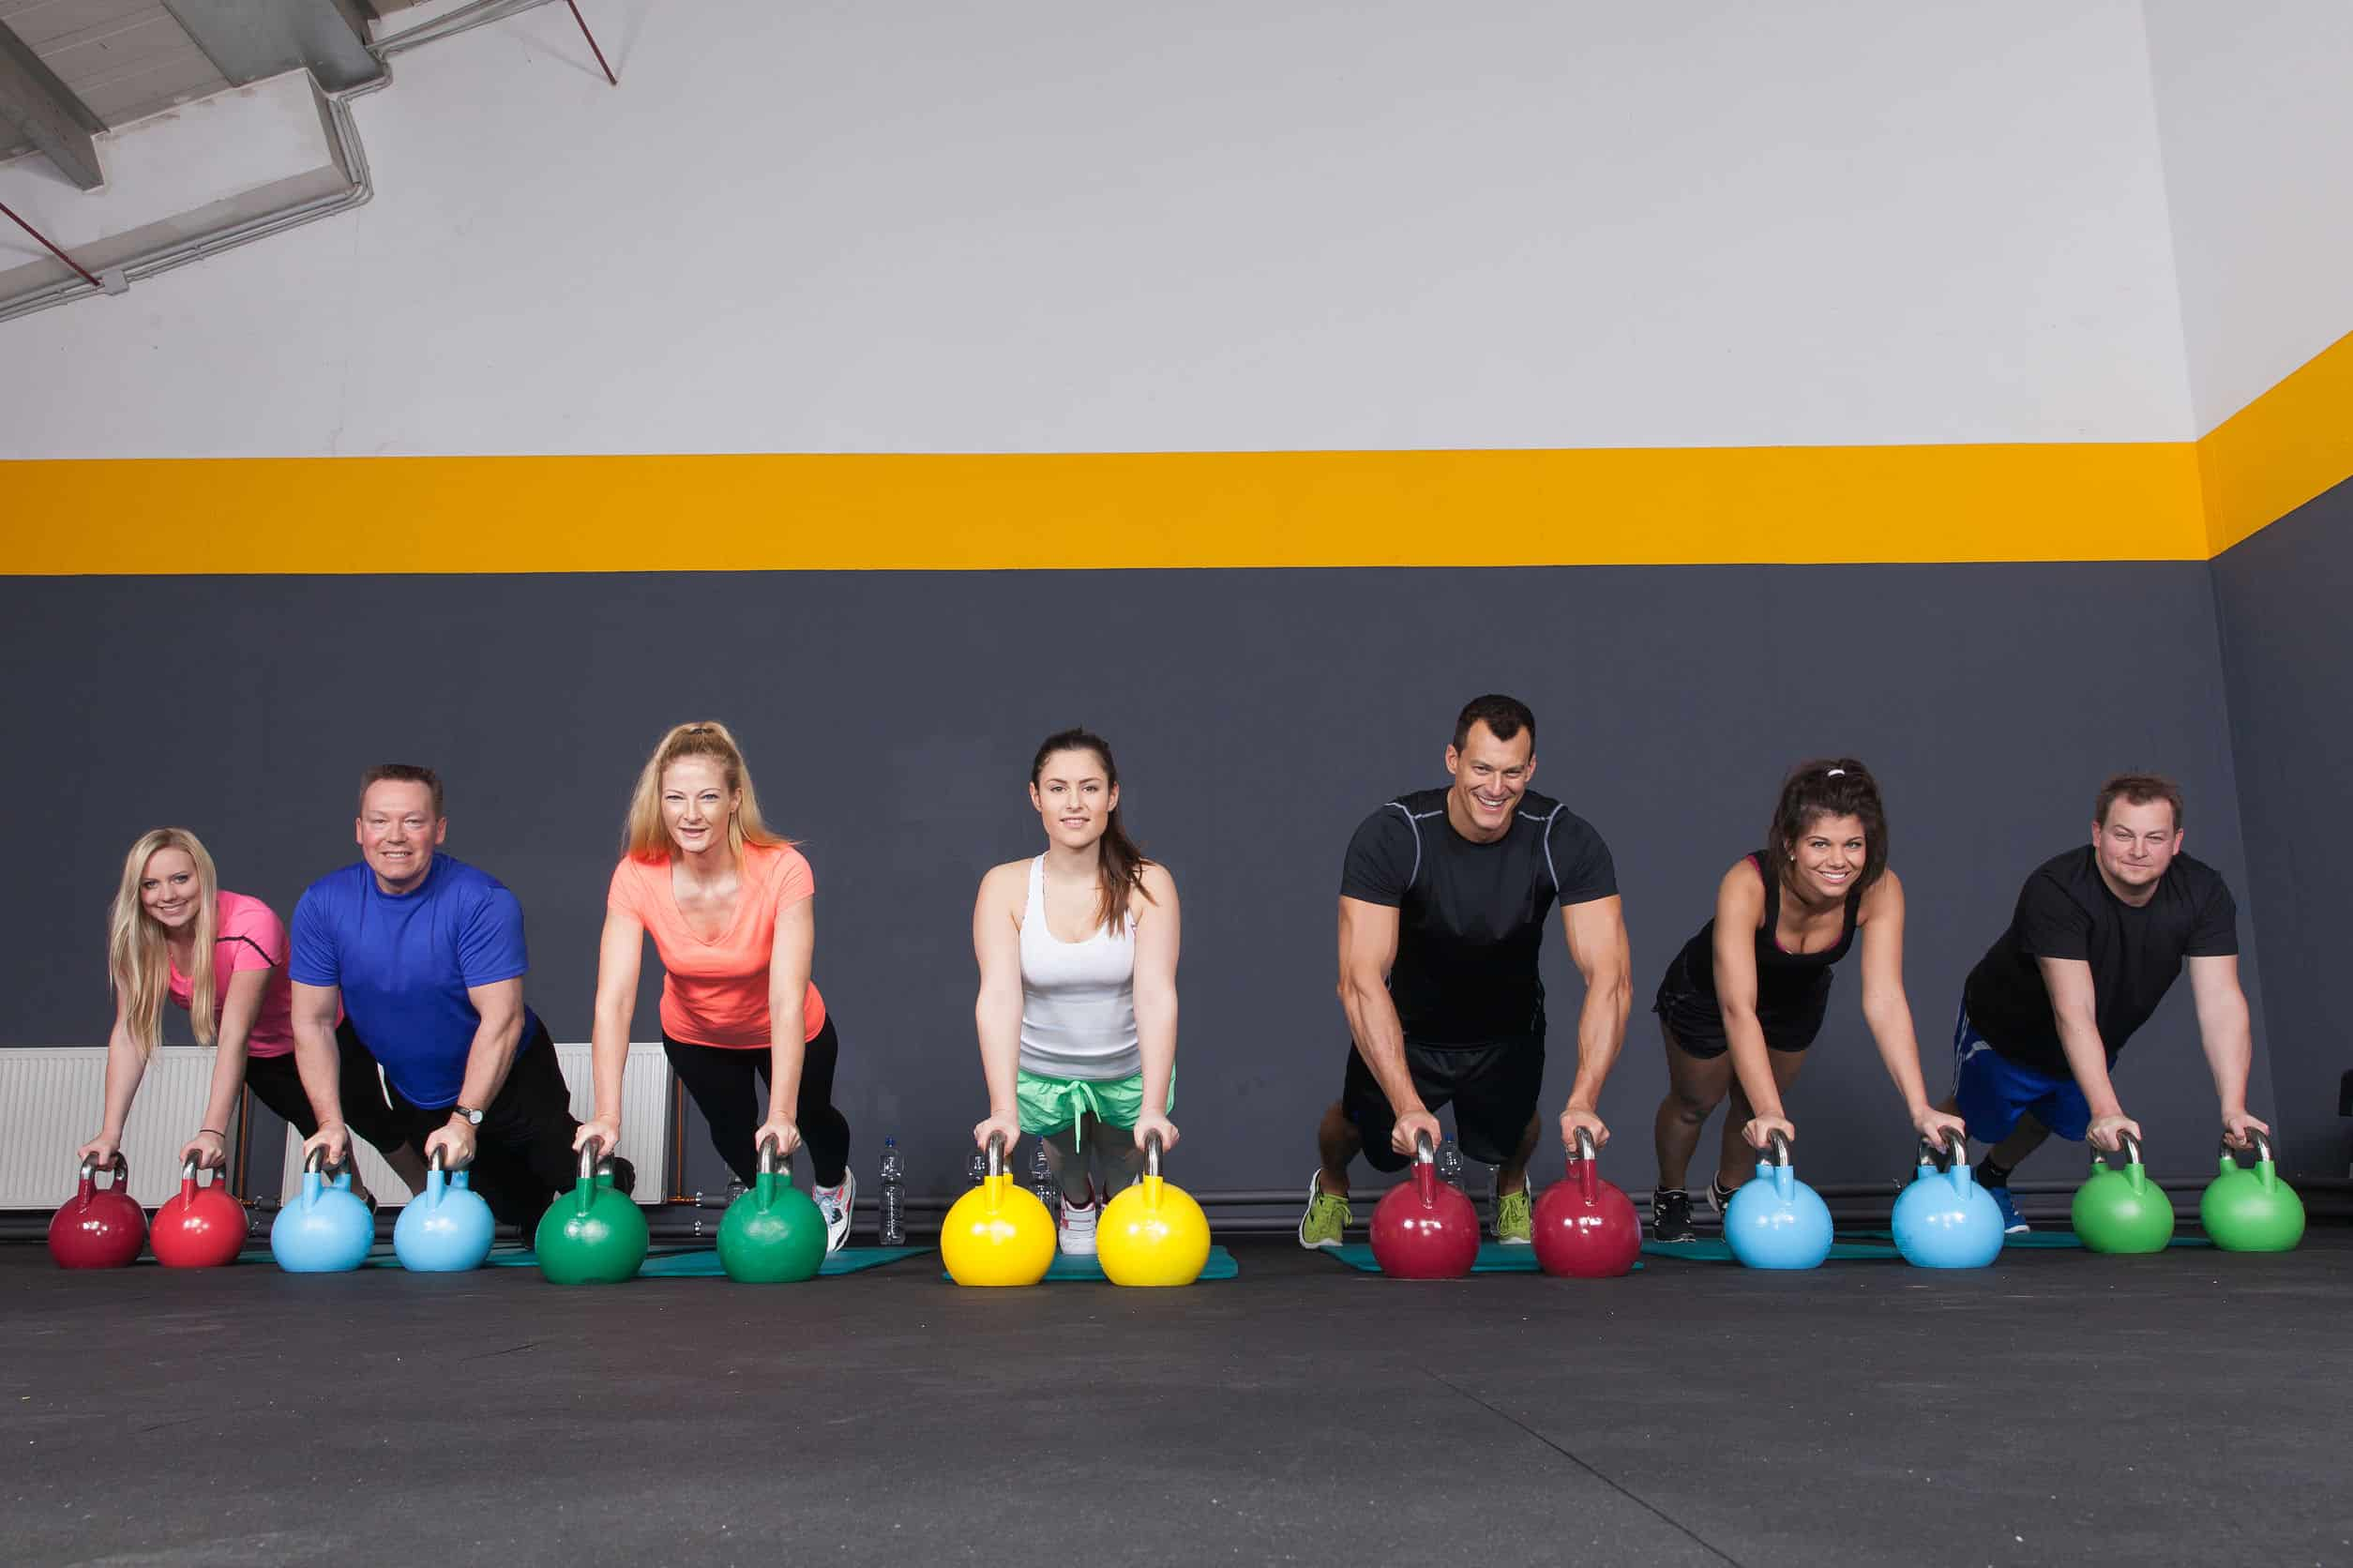 37462540 - crossfit pushup on kettlebells